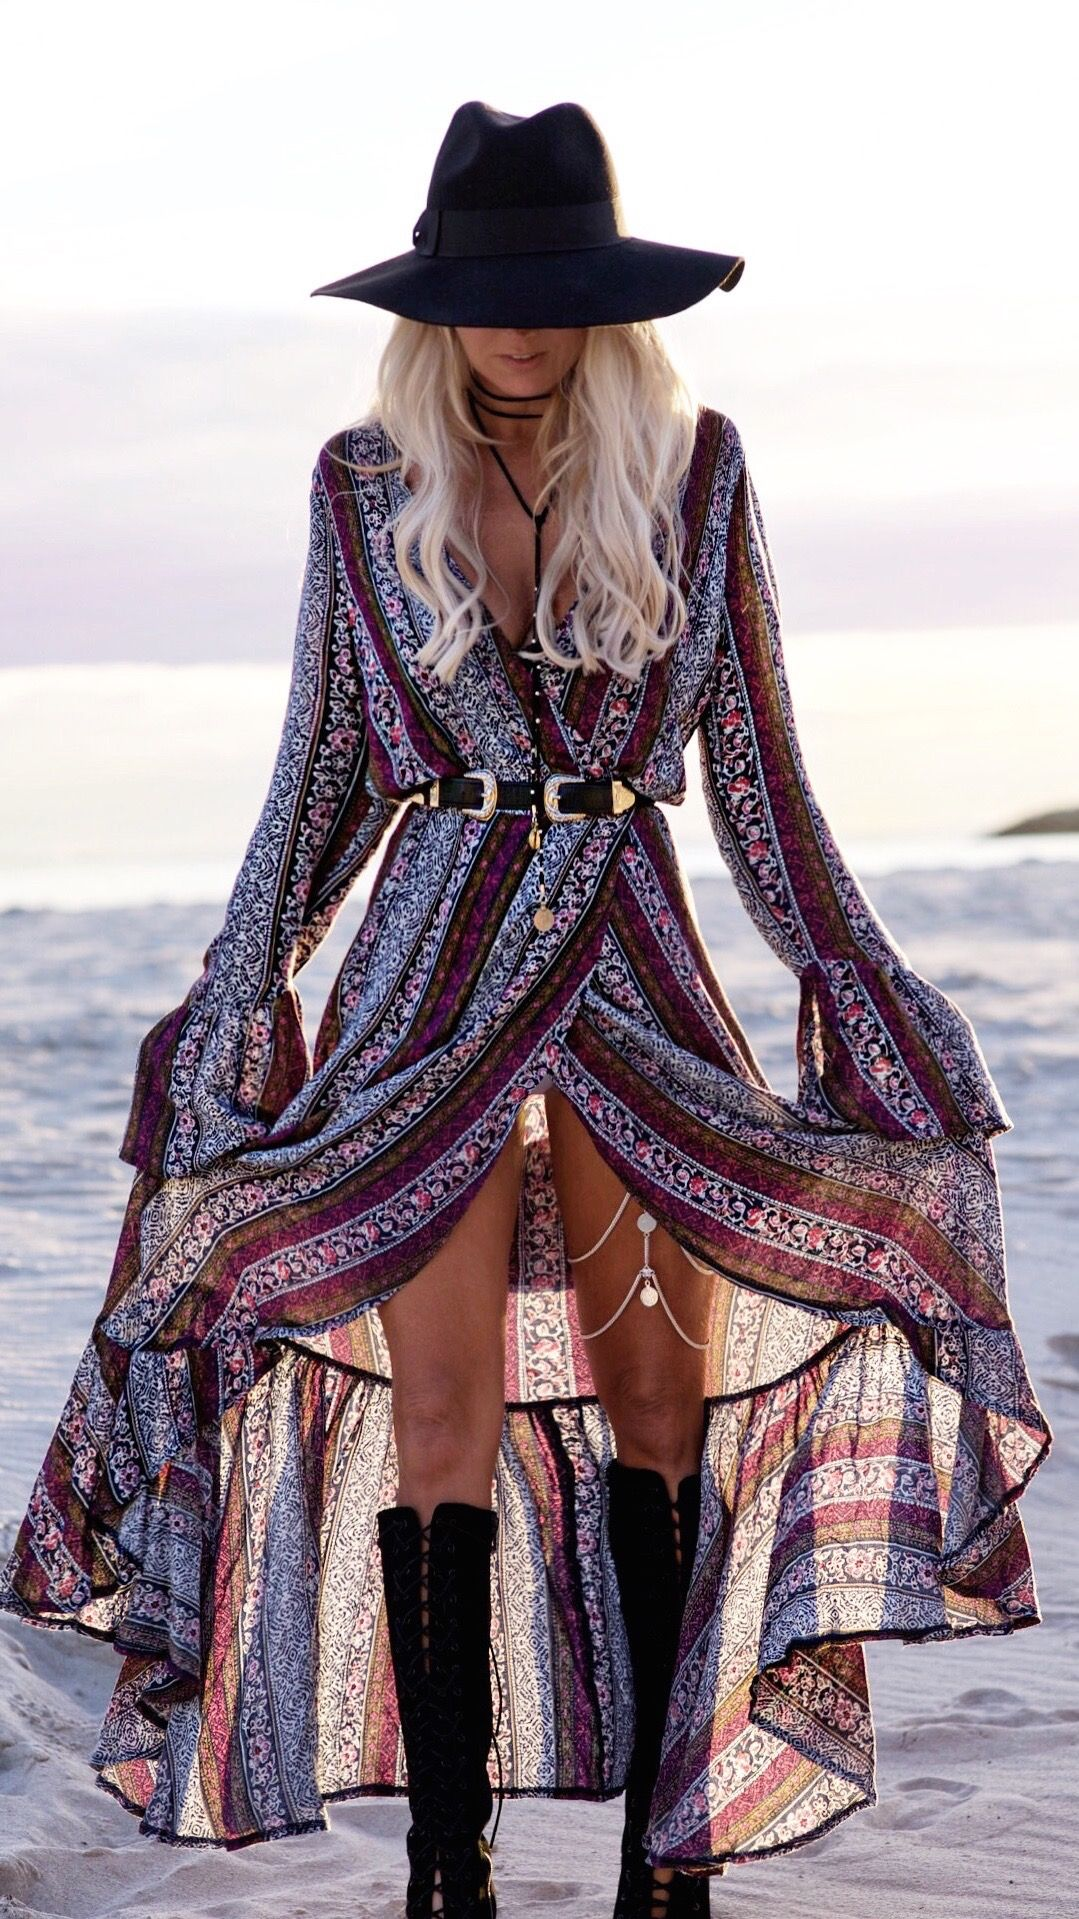 Best 25+ Boho fashion ideas on Pinterest | Boho outfits ...